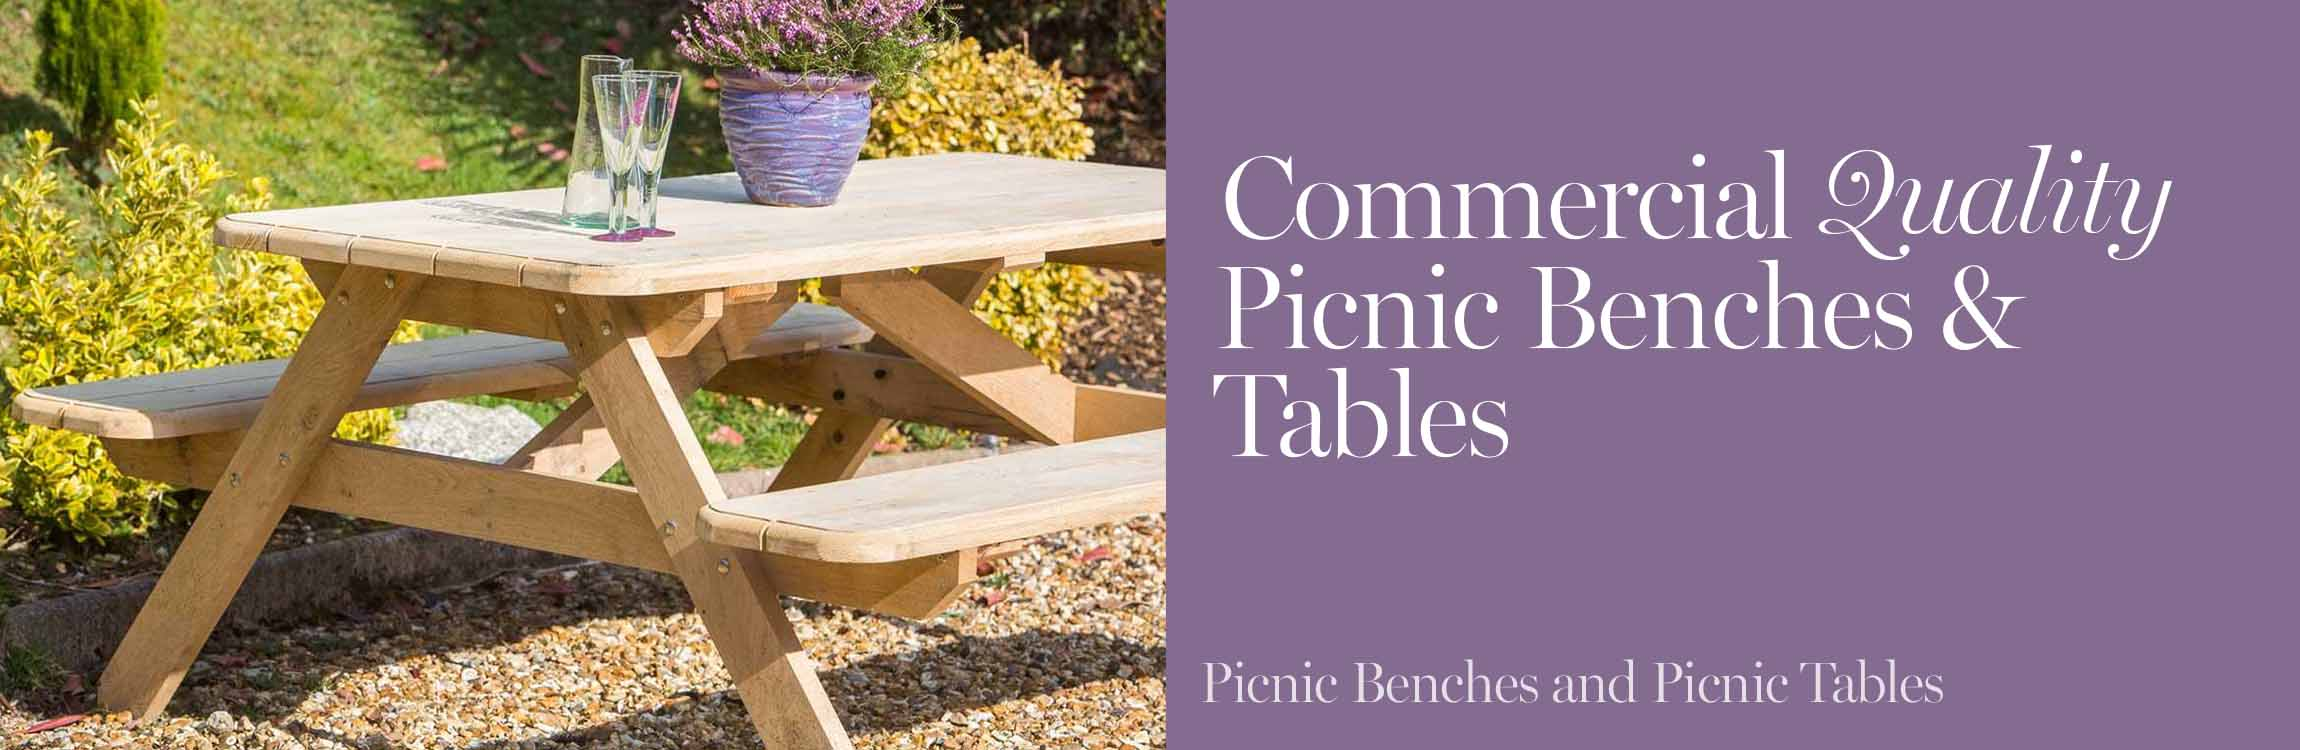 Picnic Benches and Picnic Tables